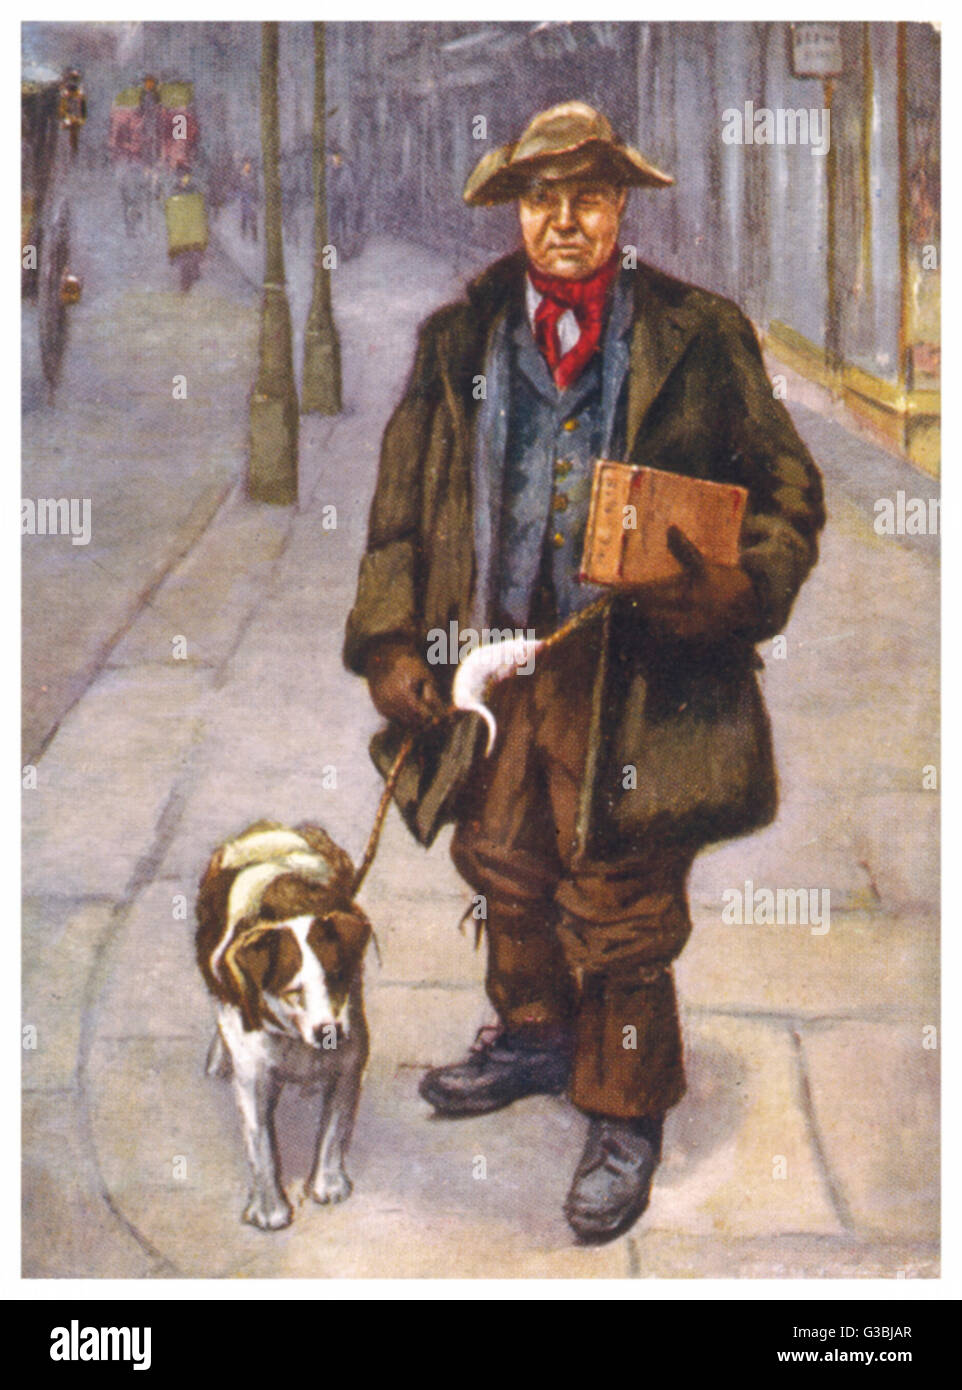 The rat catcher and his dog  walking along a London street,  striking fear into any rats  they meet...      Date: - Stock Image